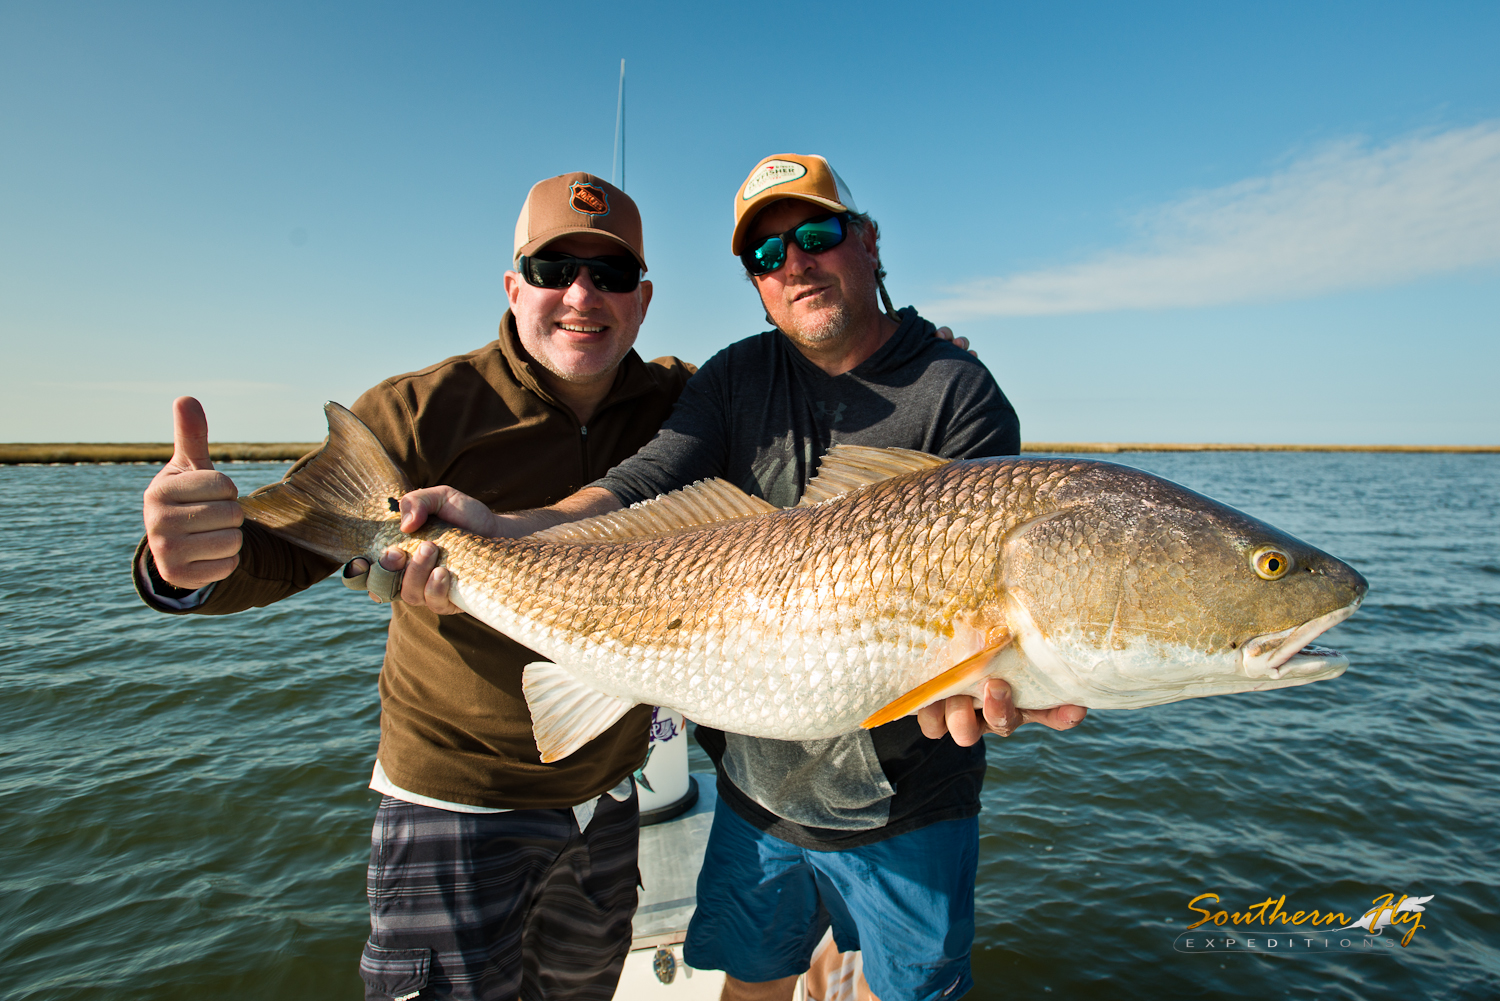 March Spin Fishing New Orleans with Southern Fly Expeditions